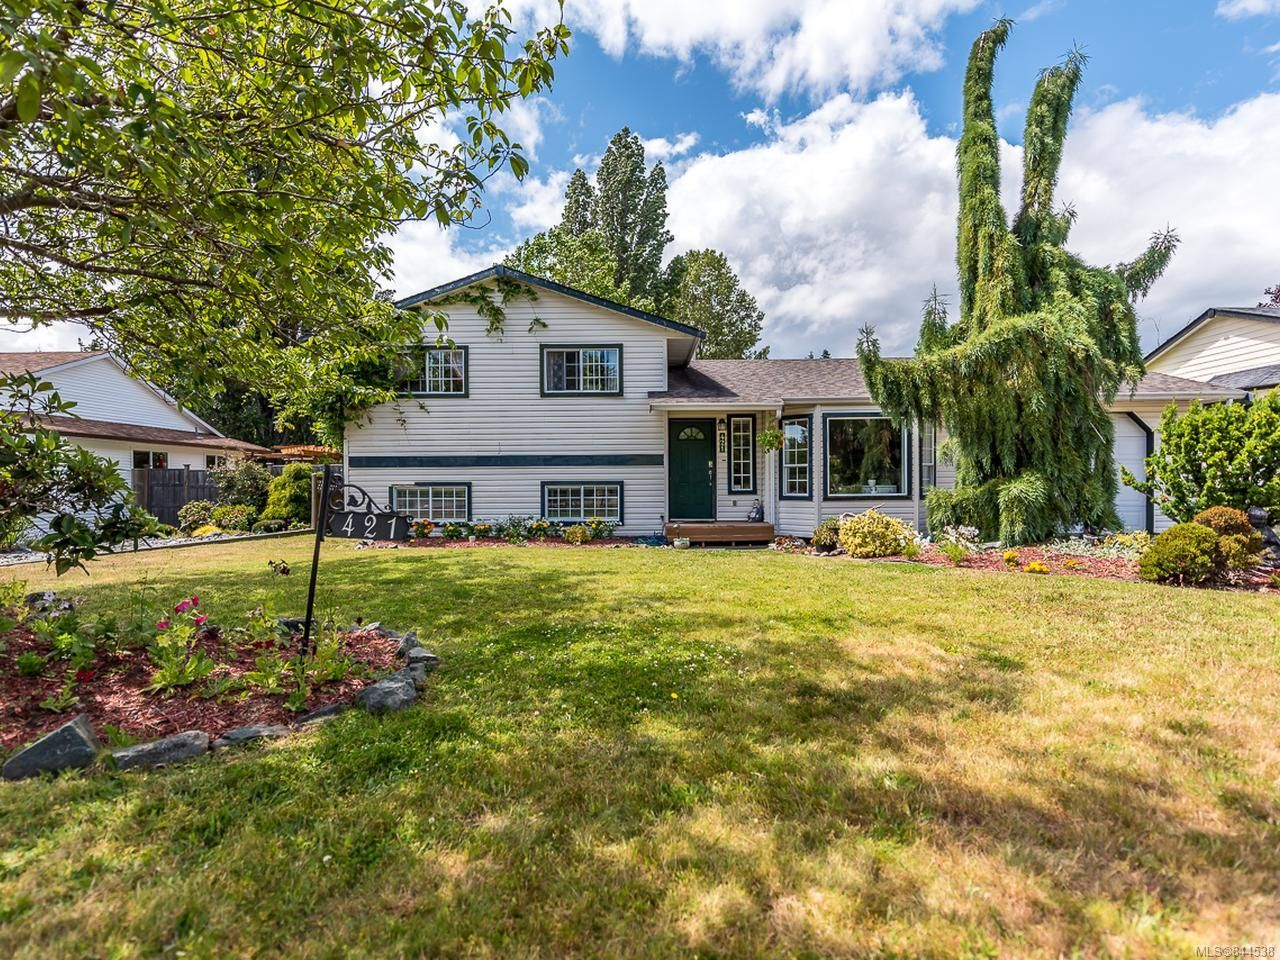 Main Photo: 421 Quarry Rd in COMOX: CV Comox (Town of) House for sale (Comox Valley)  : MLS®# 844538